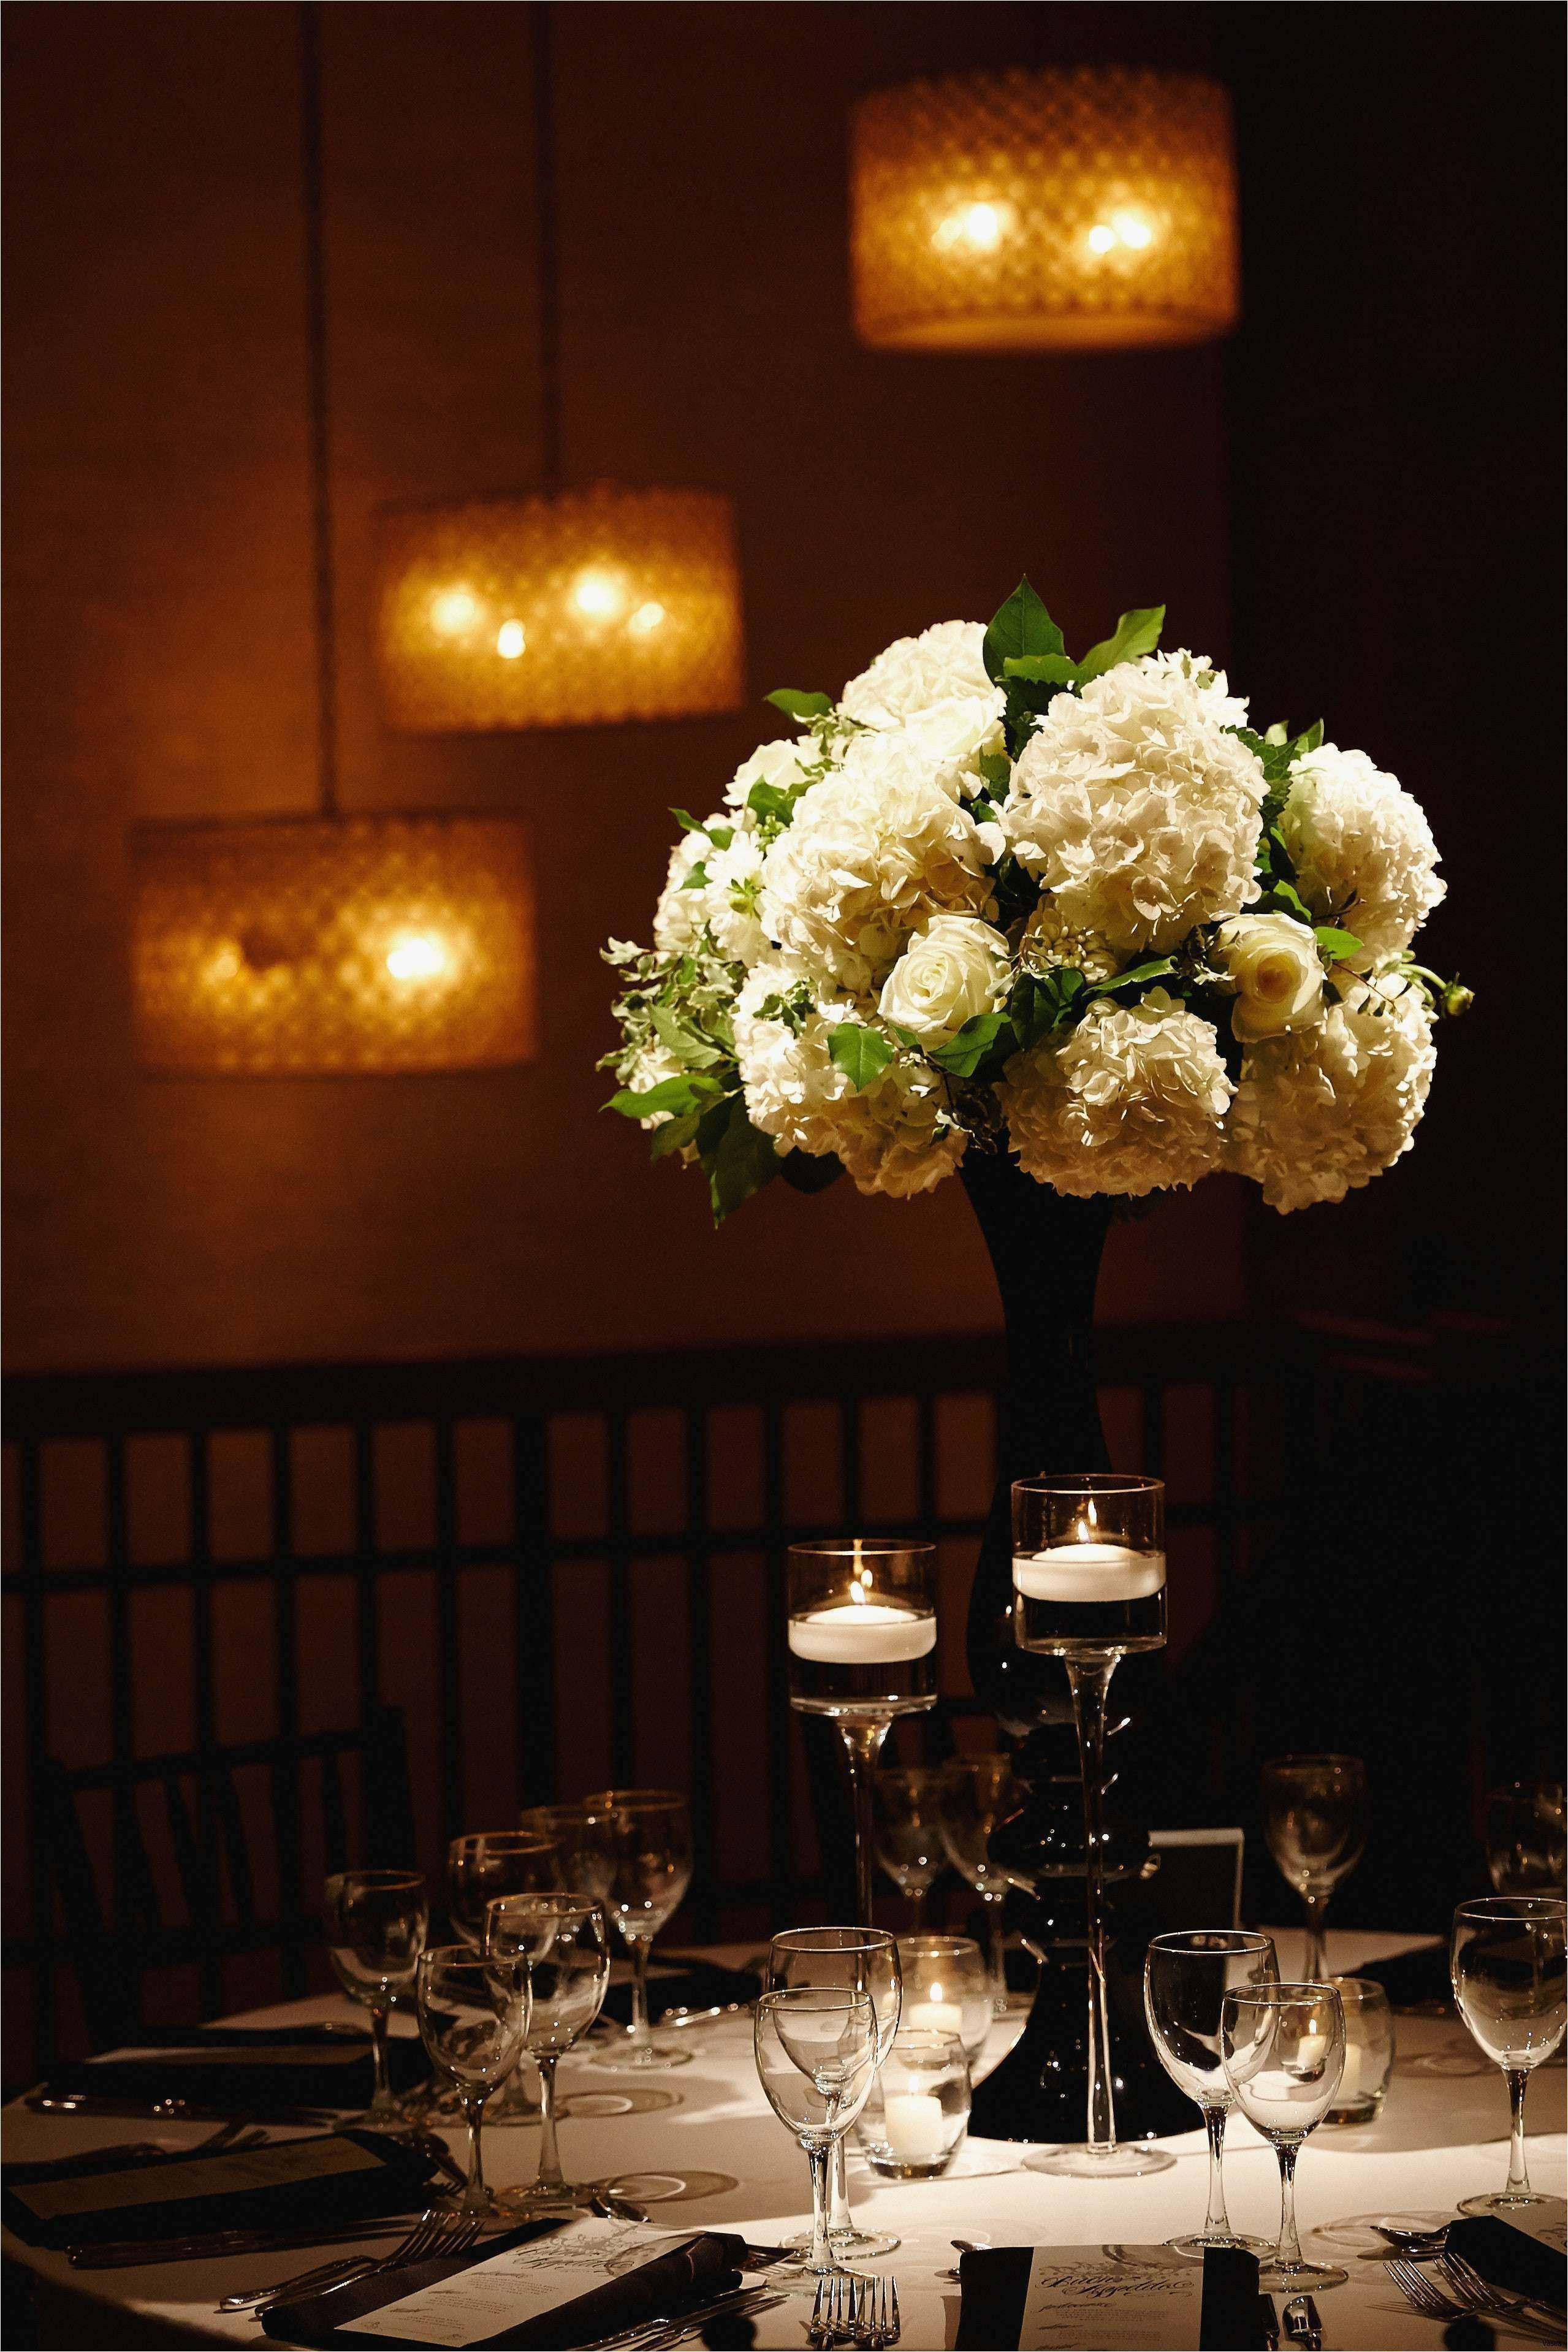 12 Lovable Diy Vase Ideas 2021 free download diy vase ideas of table centerpieces concept diy home decor vaseh vases decorative pertaining to table centerpieces simple 40 tall table fresh tall vase centerpiece ideas vases flowers in re